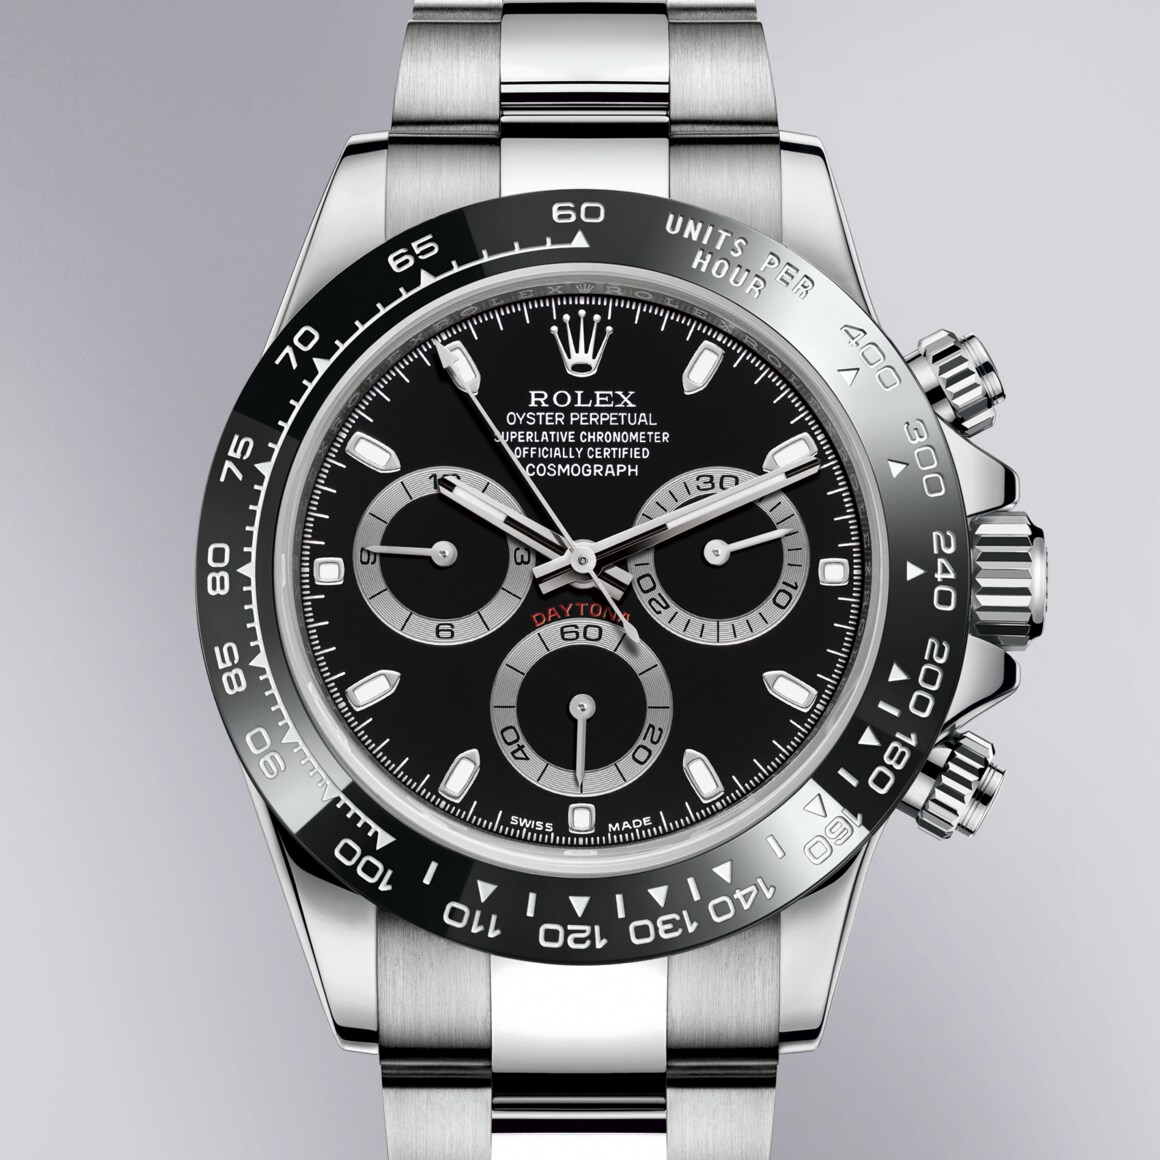 Rolex Oyster Perpetual Cosmograph Daytona In Oystersteel